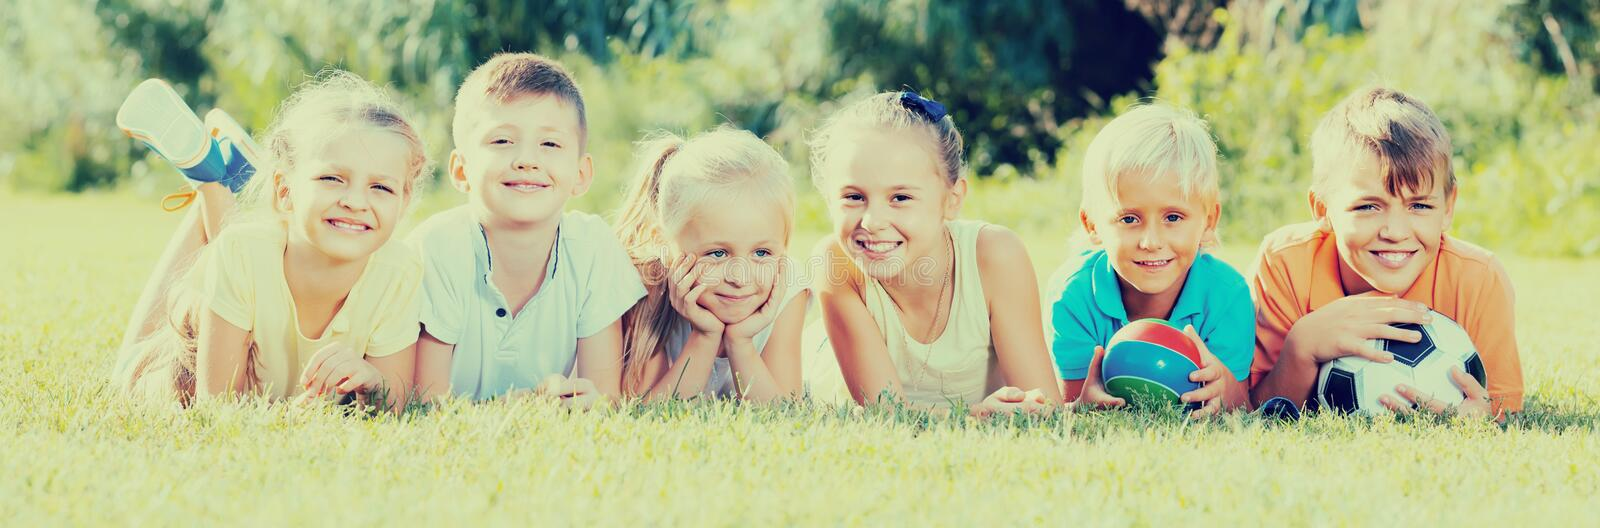 Portrait of children lying on grass in park and looking happy stock photo